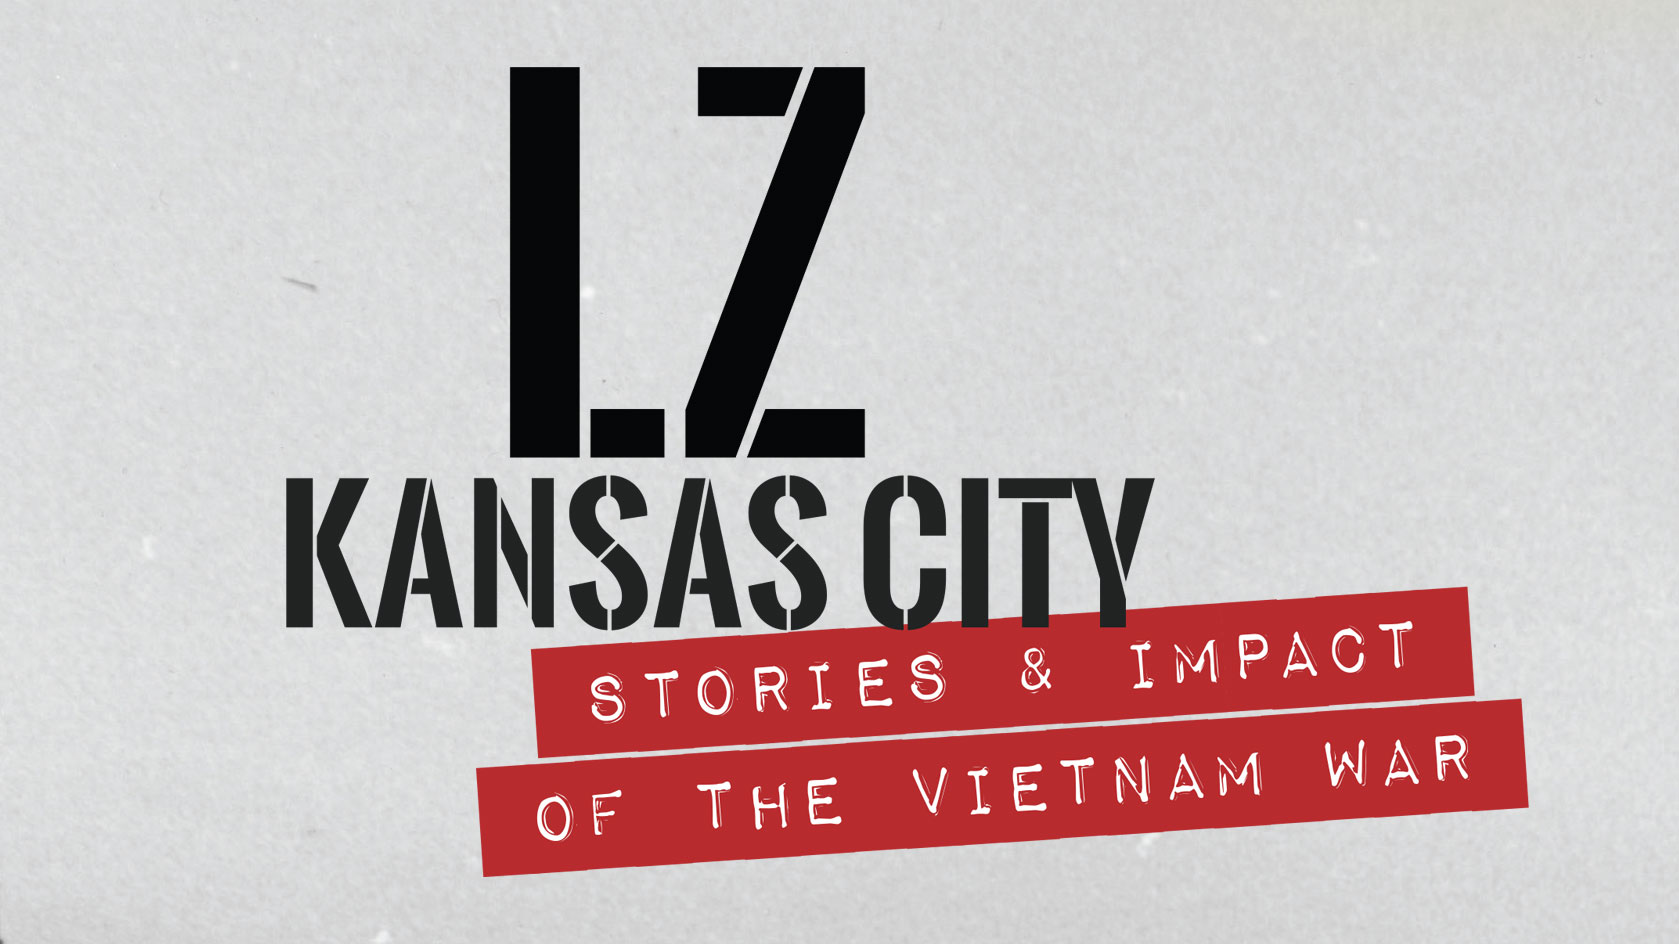 LZ KANSAS CITY: STORIES AND IMPACT OF THE VIETNAM WAR